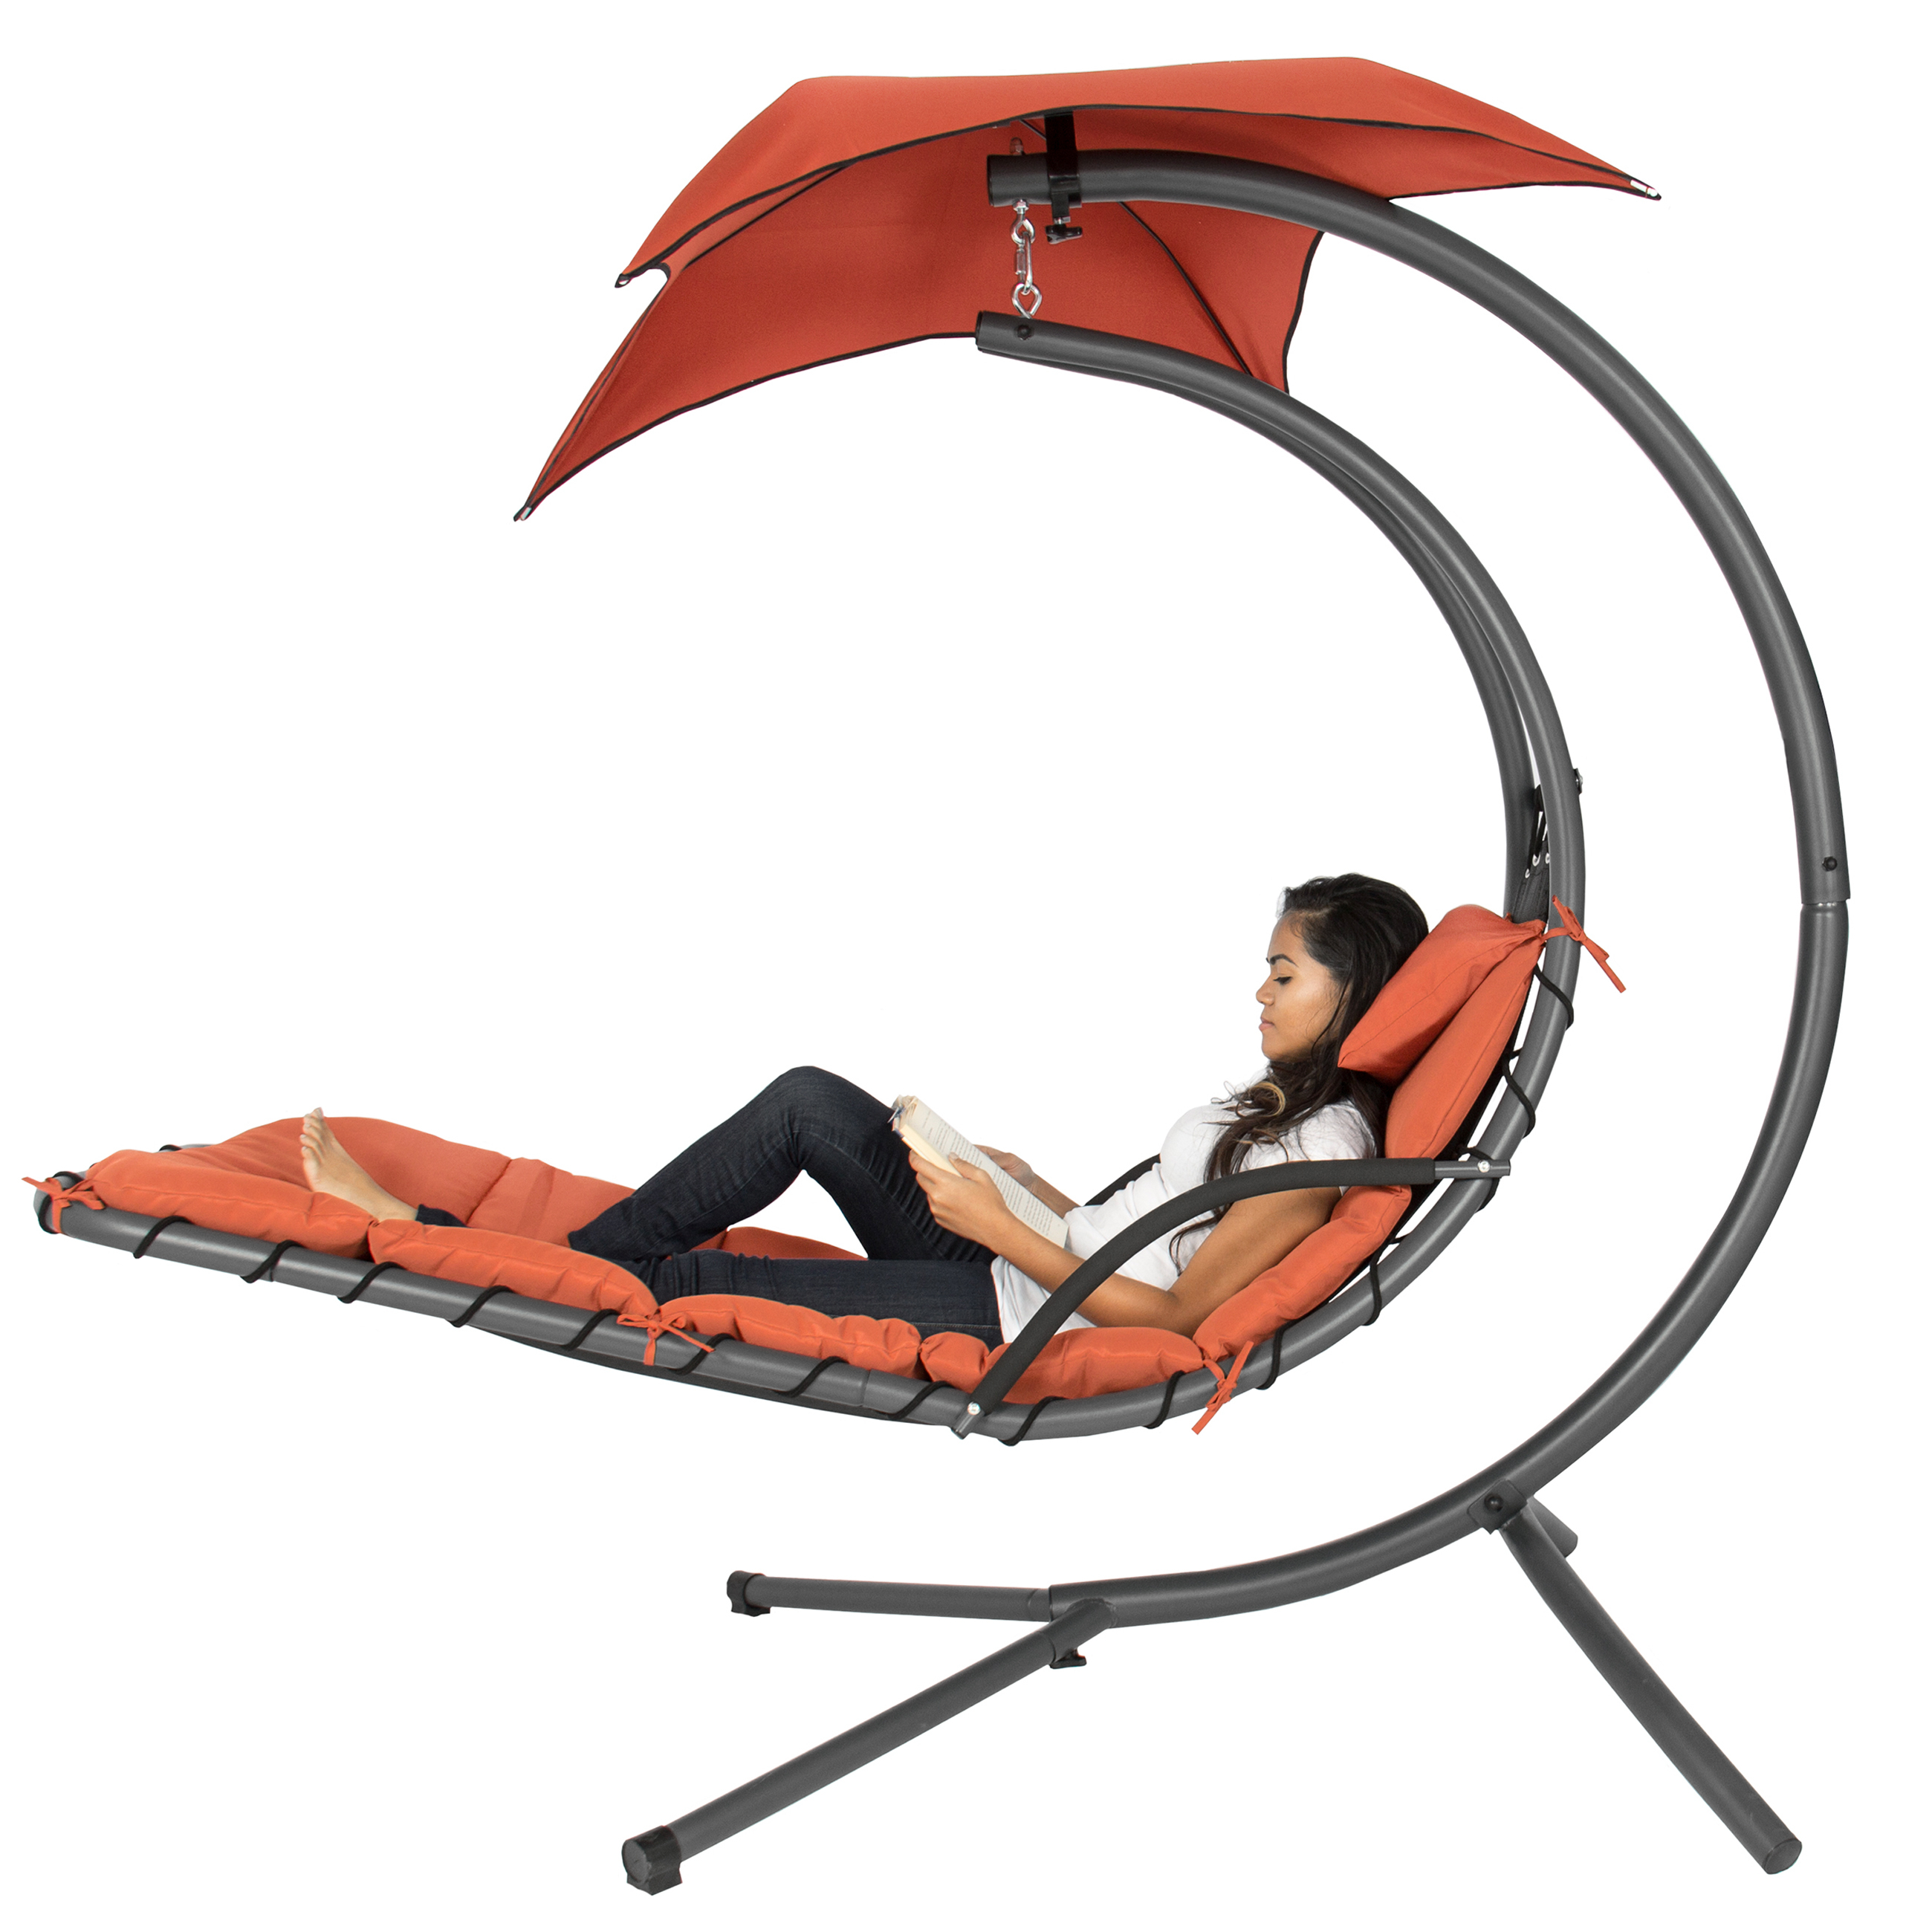 Bestchoiceproducts: Best Choice Products Hanging Curved Chaise Lounge Chair  Swing For Backyard, Patio W/ Pillow, Canopy, Stand – Orange | Rakuten Inside Orange Rocking Chairs Lounge Chairs (View 4 of 20)